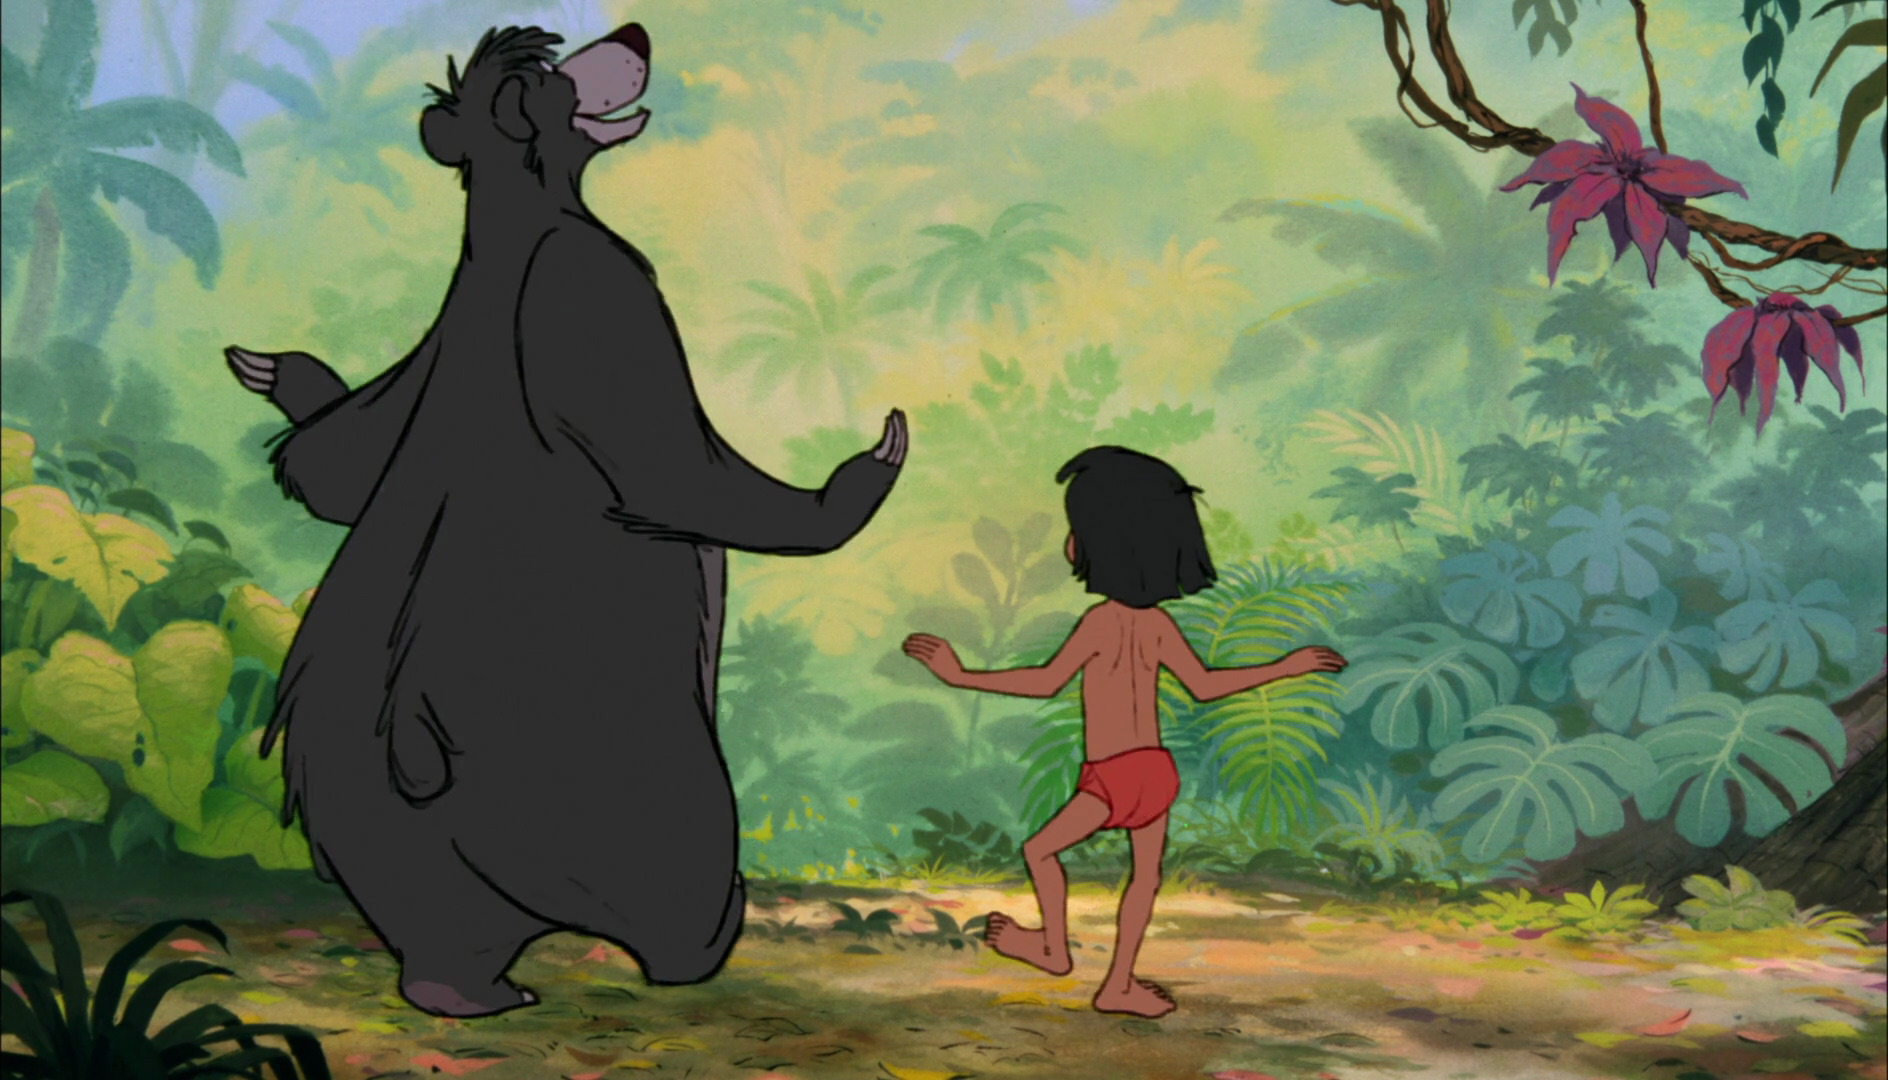 Jungle Book Quotes 10 Quotes From The Jungle Book That Will Make You Think Smile And